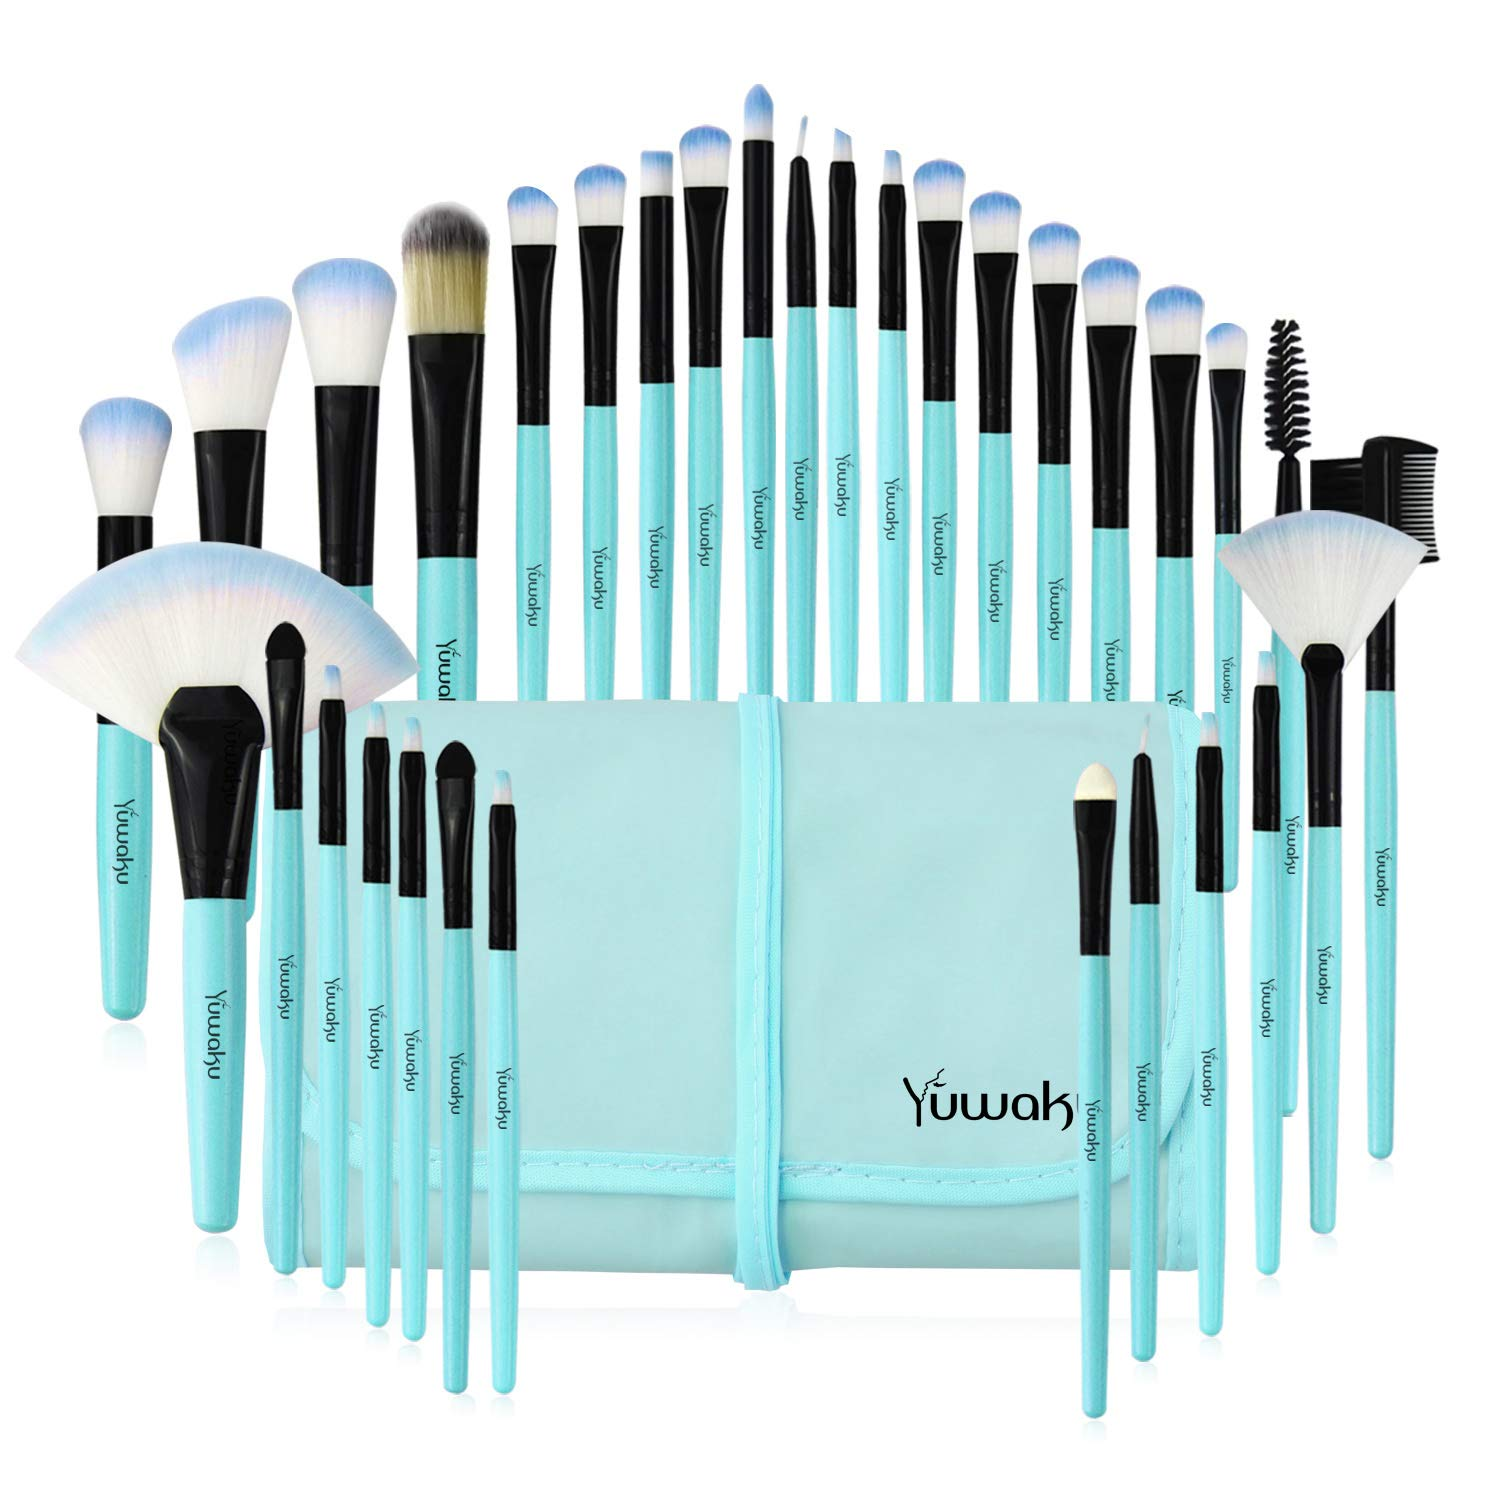 Makeup Brushes Set, 32pcs Blue Premium Cosmetic Make Up Brushes Foundation Blending Blush Concealer Shader Eyeshadow Eyeliner Compatible withTravel Makeup Bag